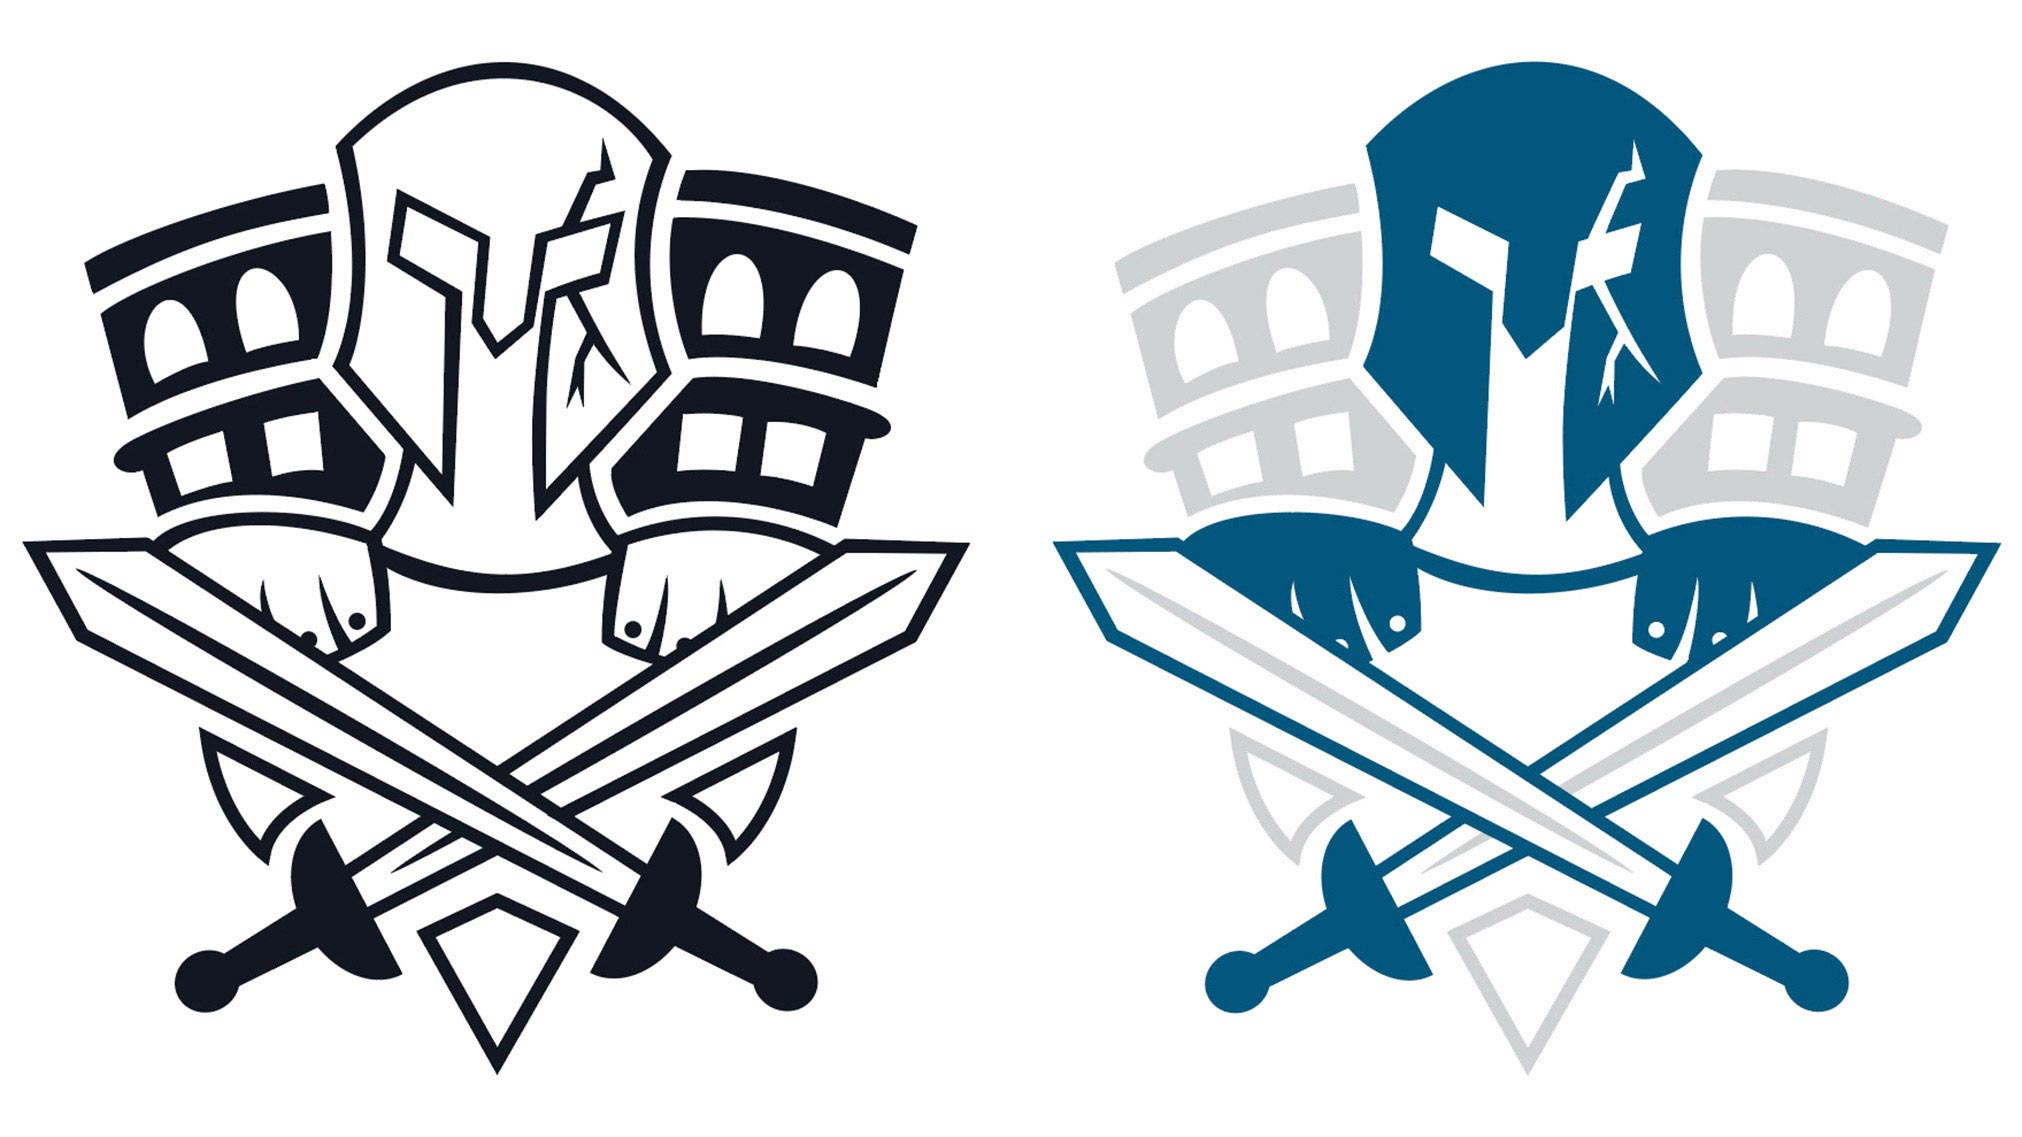 In 2018 I drew the theme Maximus Decimus Meridius The Gladiator for my icon project. After several rounds of sketching and research I came up with the design that I'm still proud of.